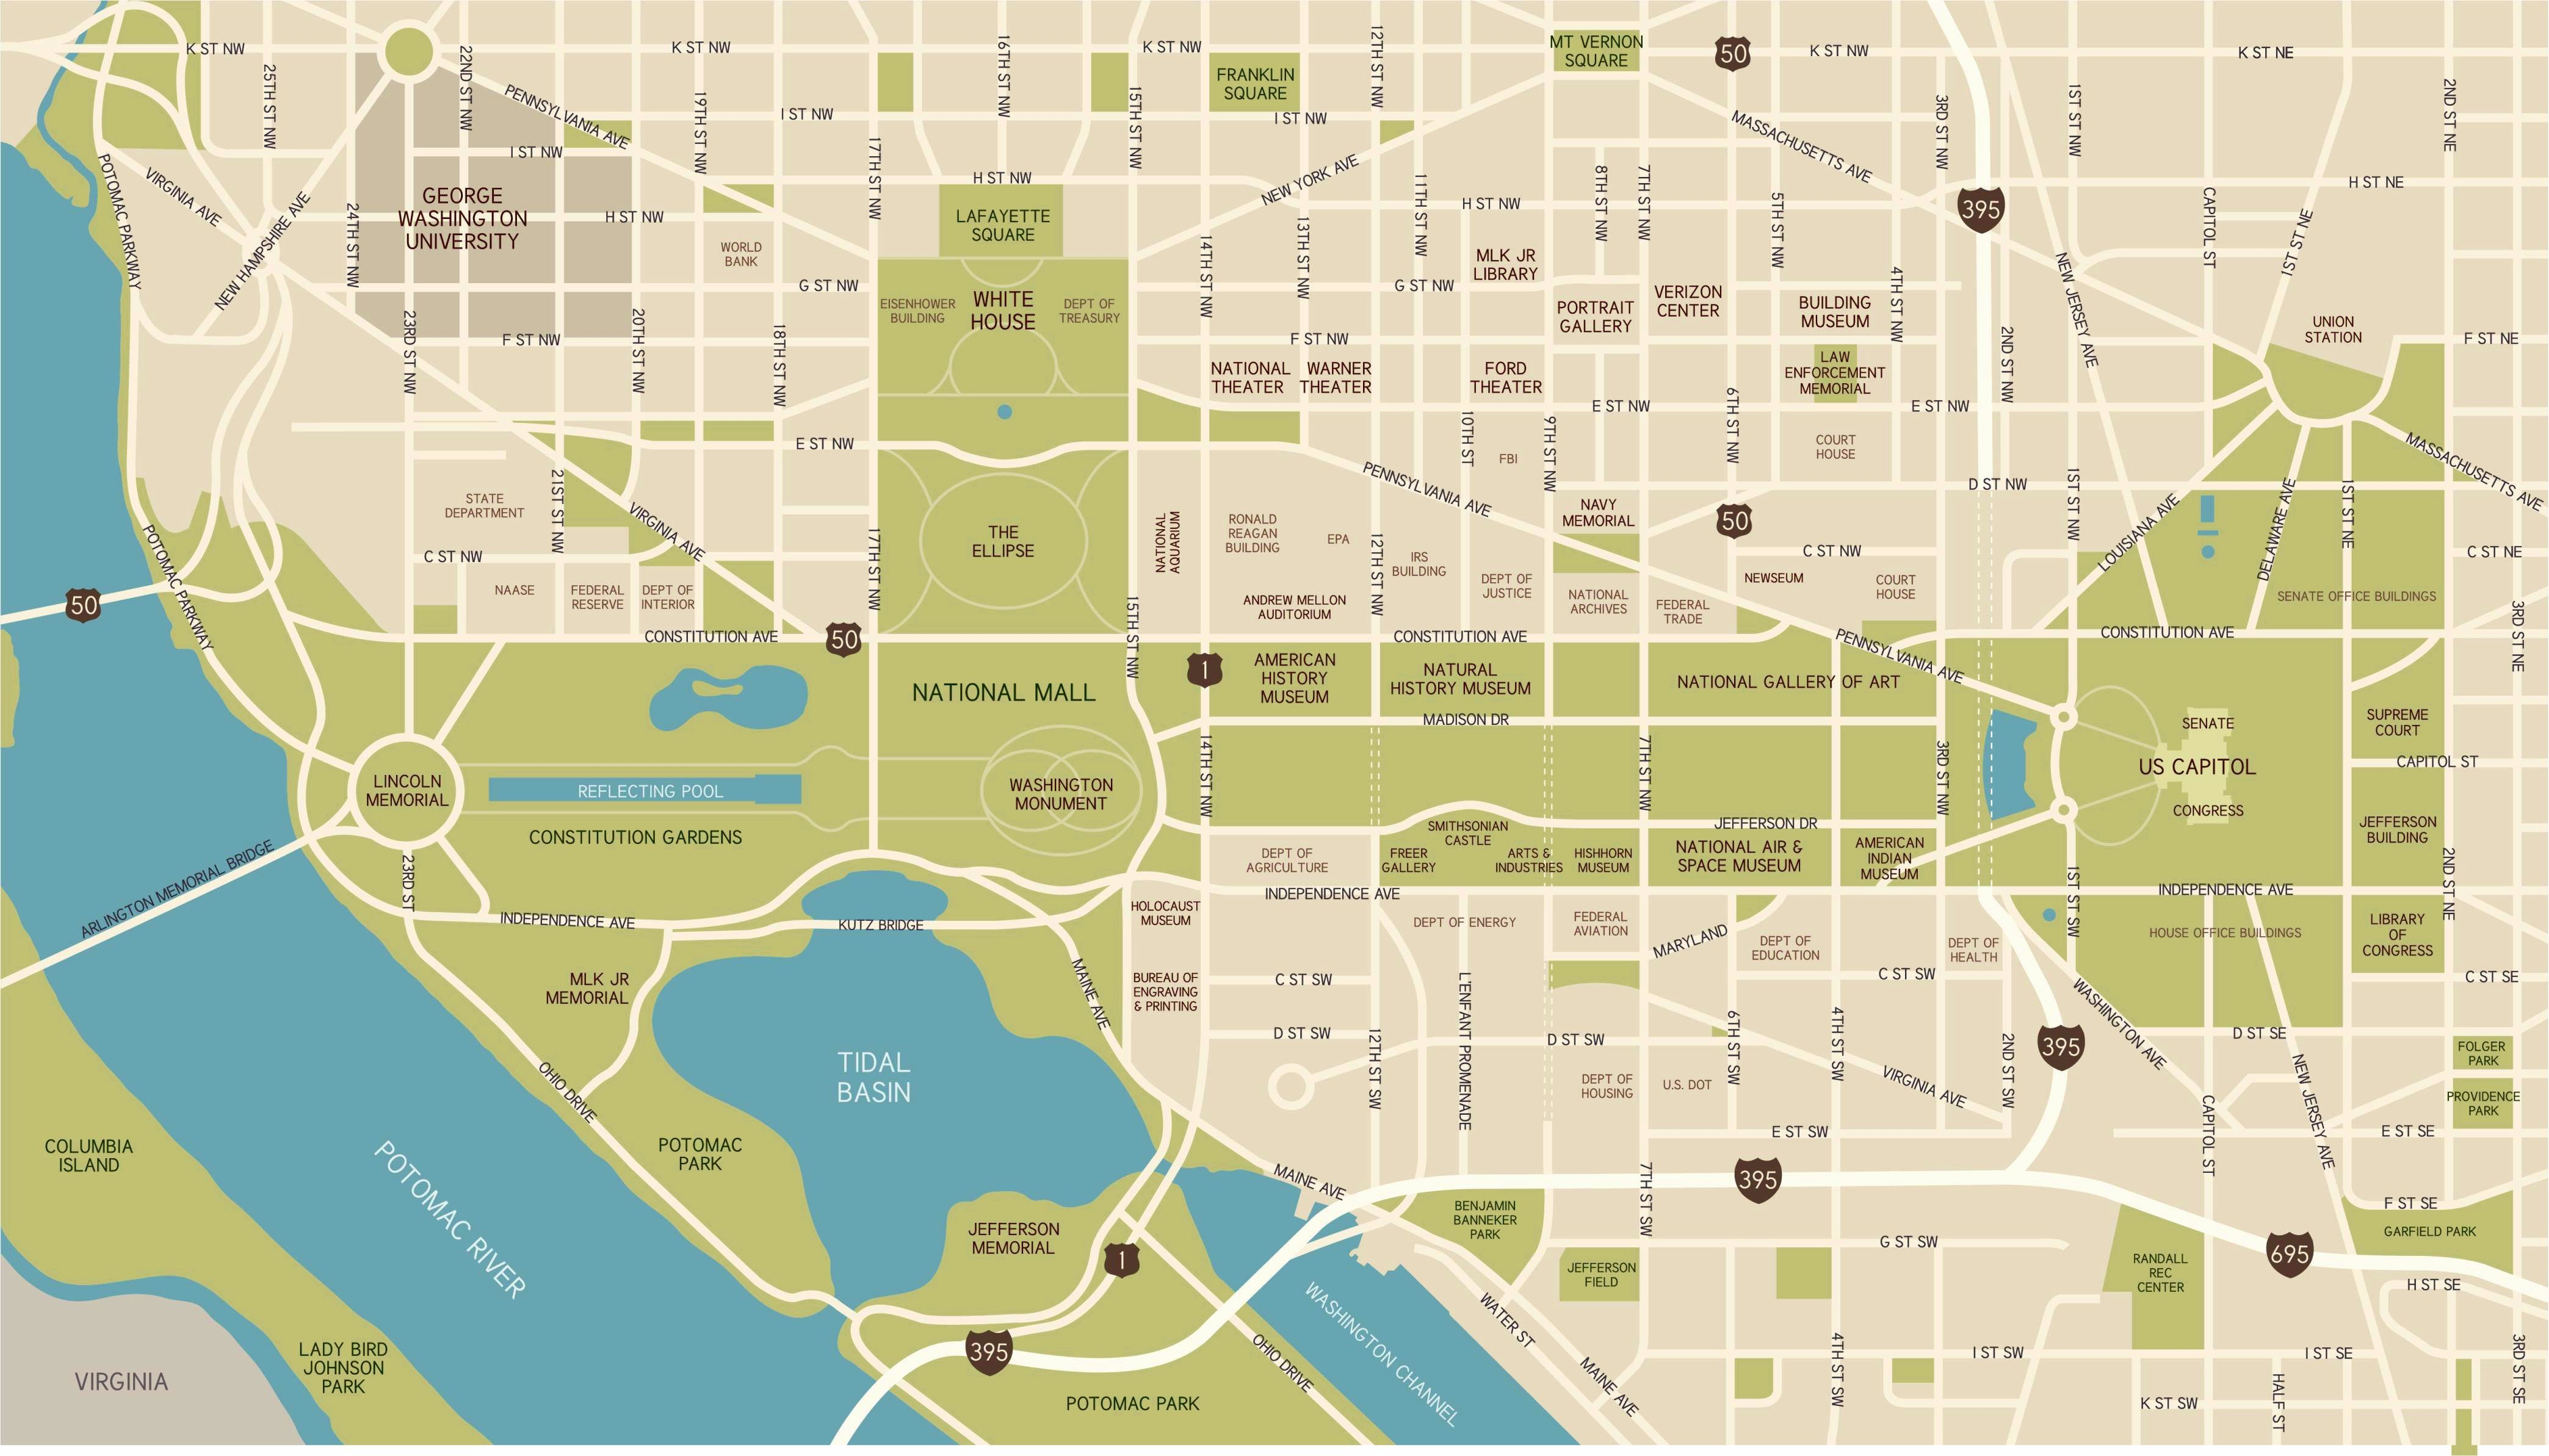 Monster image with regard to national mall map printable